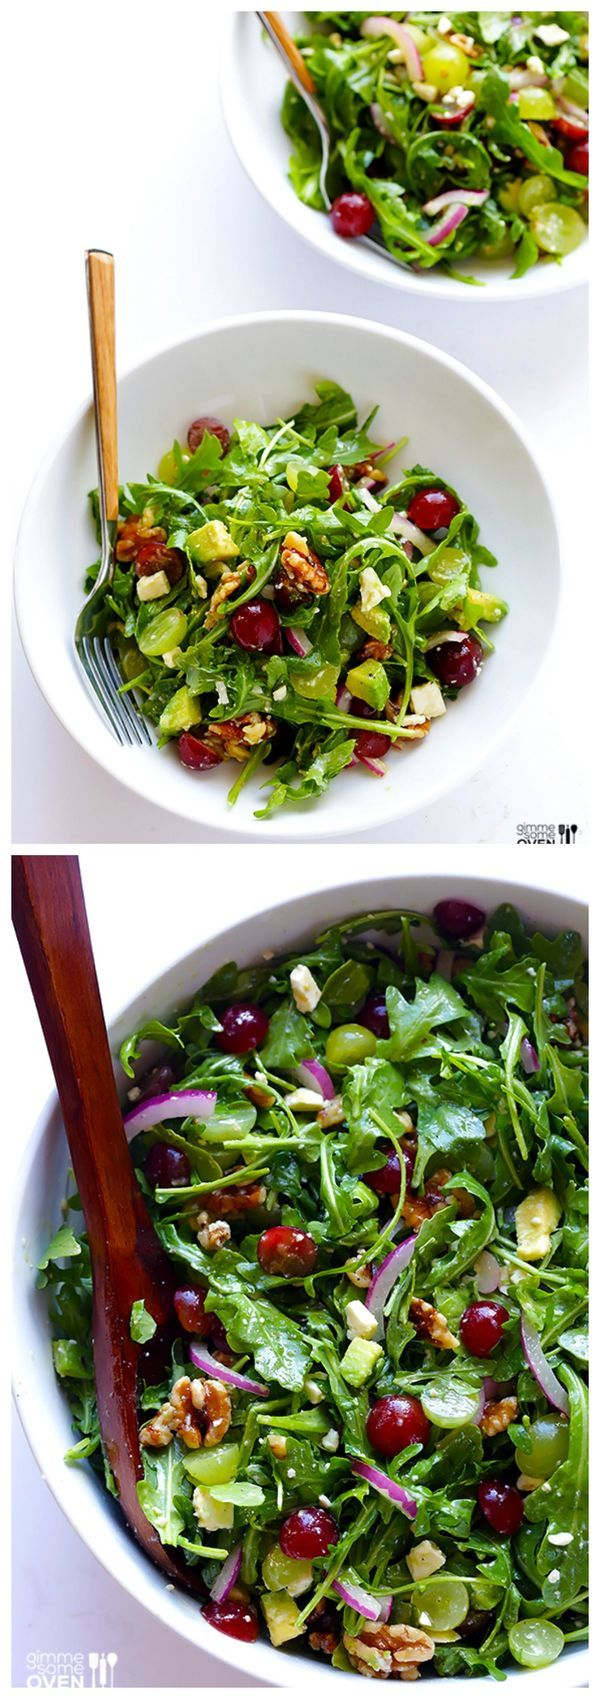 Grape, Avocado & Arugula Salad -- this simple salad is fresh, light, and full of wonderful sweet flavors you'll love! | gimmesomeoven.com #salad #recipe #glutenfree